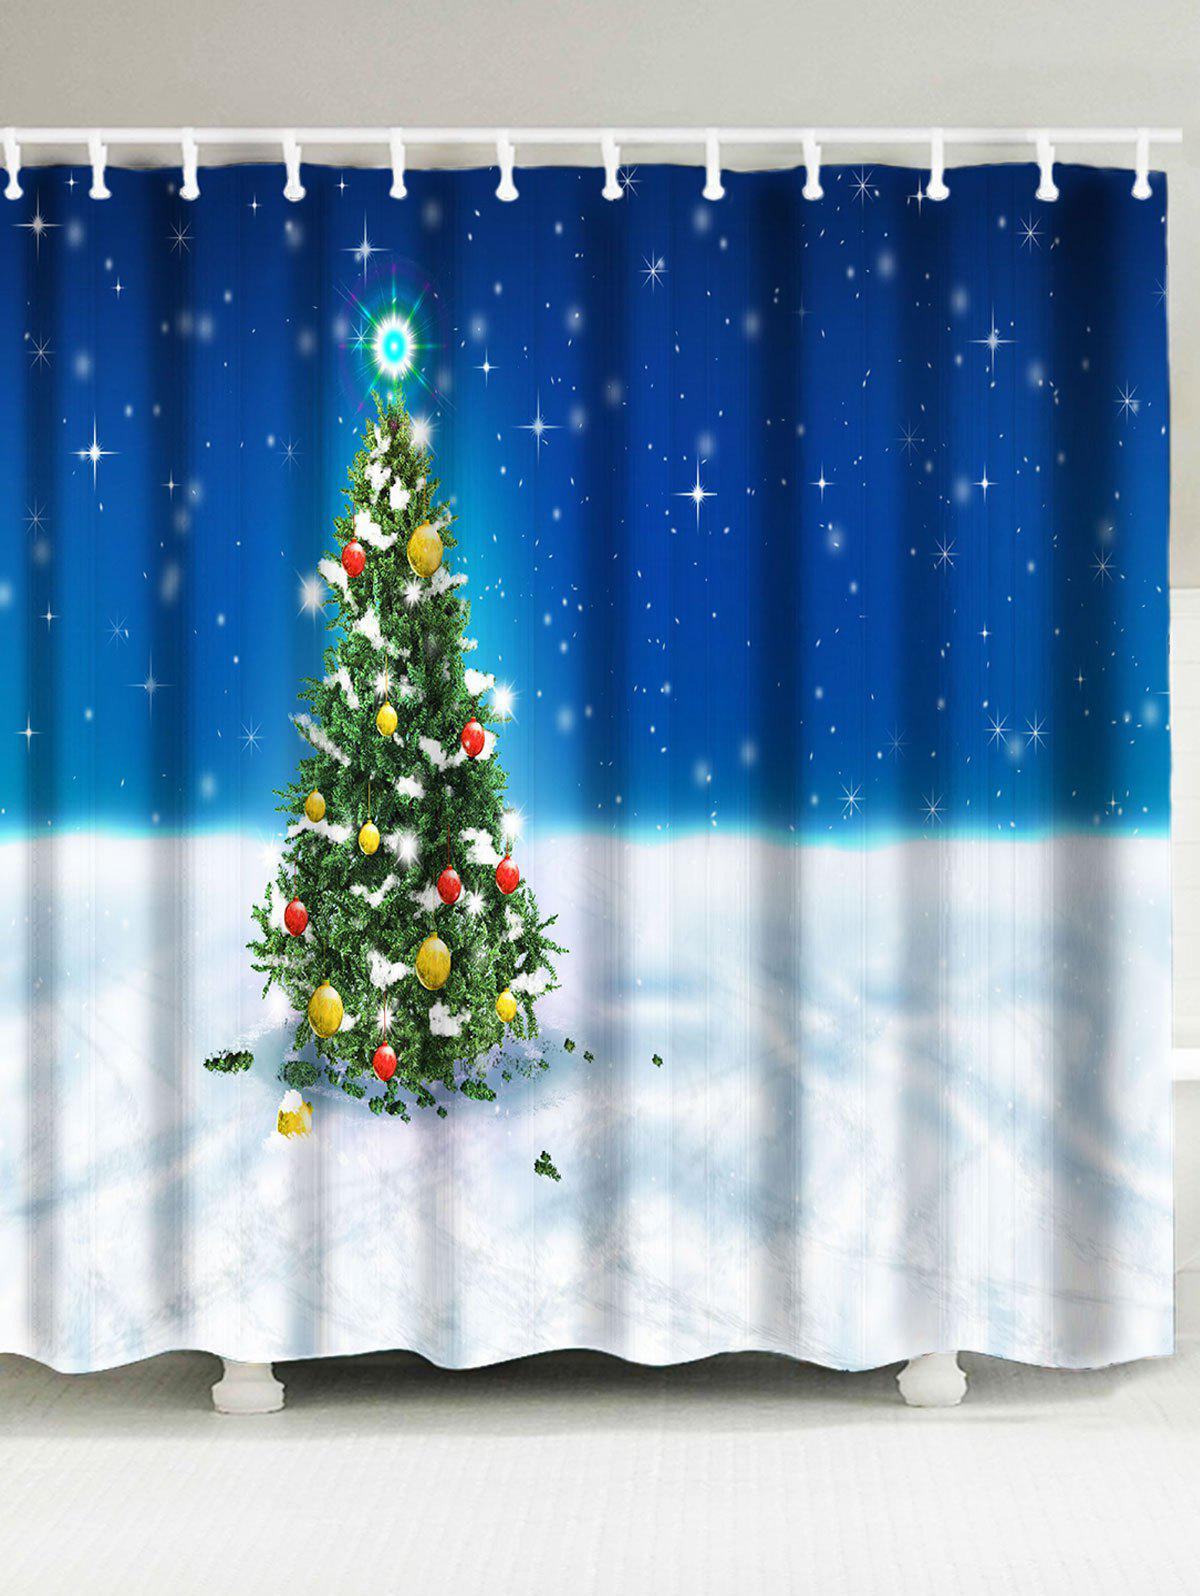 Christmas Tree Snowfield Patterned Bath Shower Curtain merry christmas printed bath waterproof shower curtain